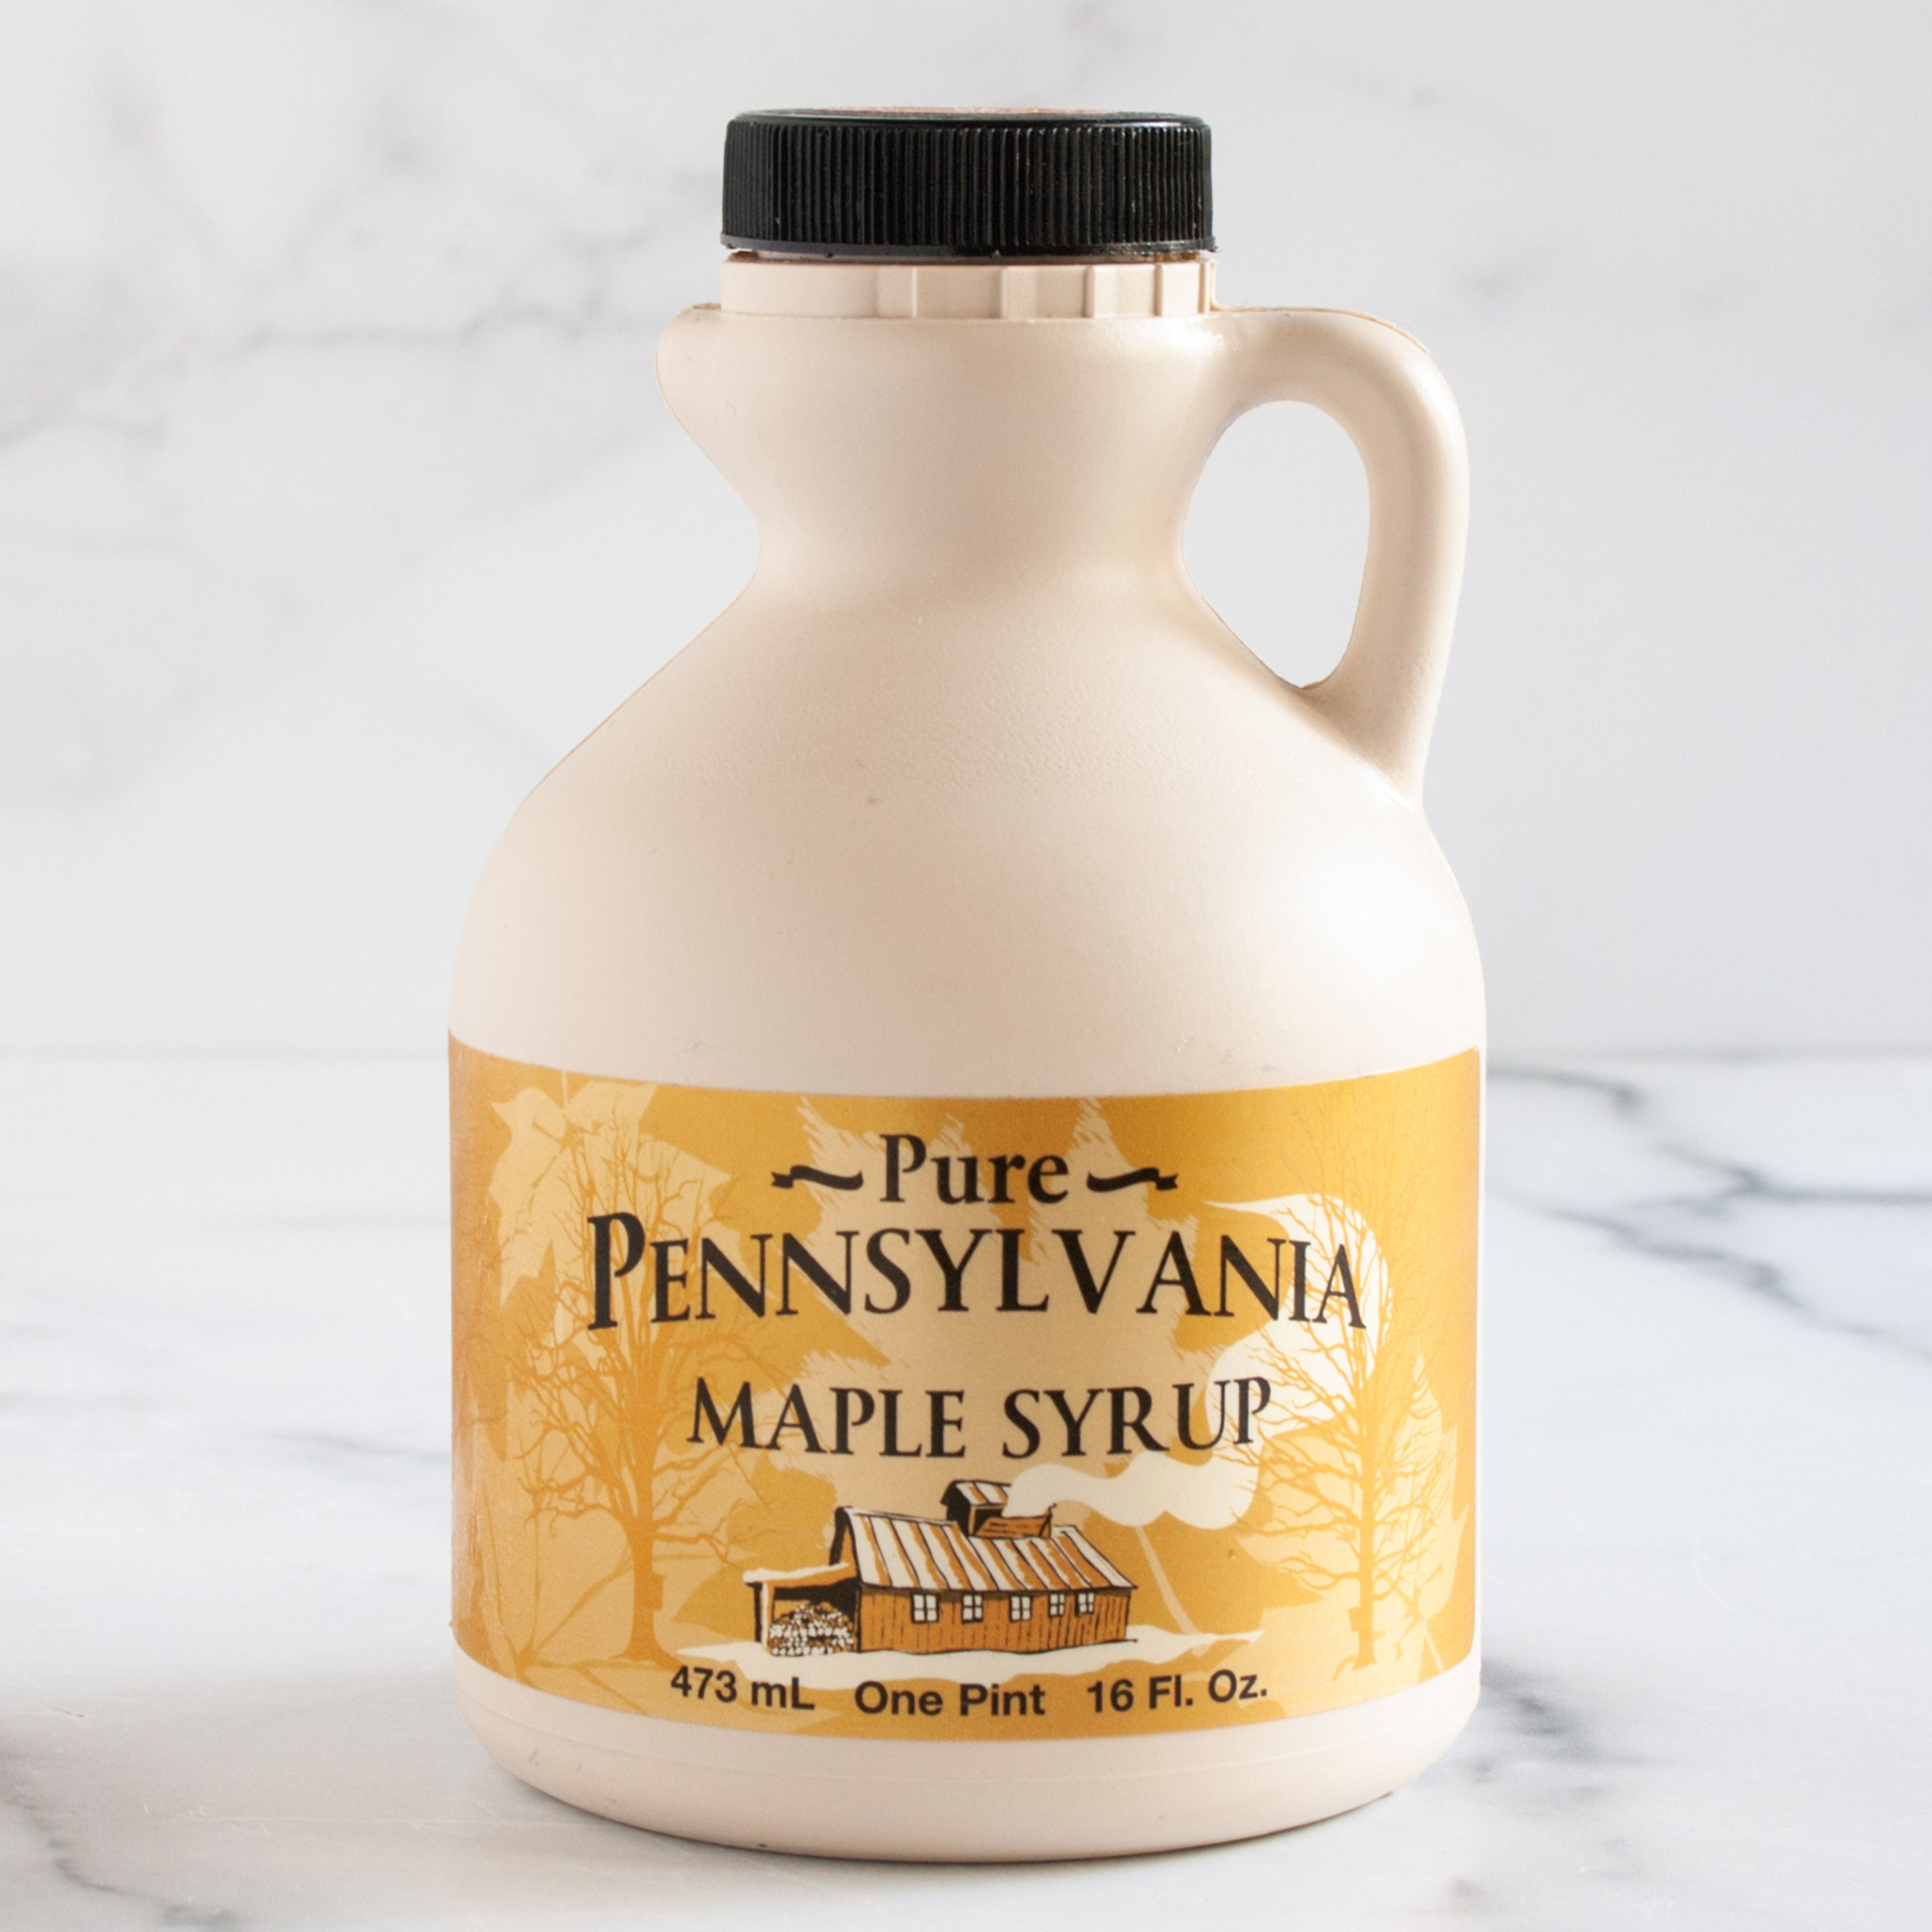 Pennsylvania Dark Maple Syrup